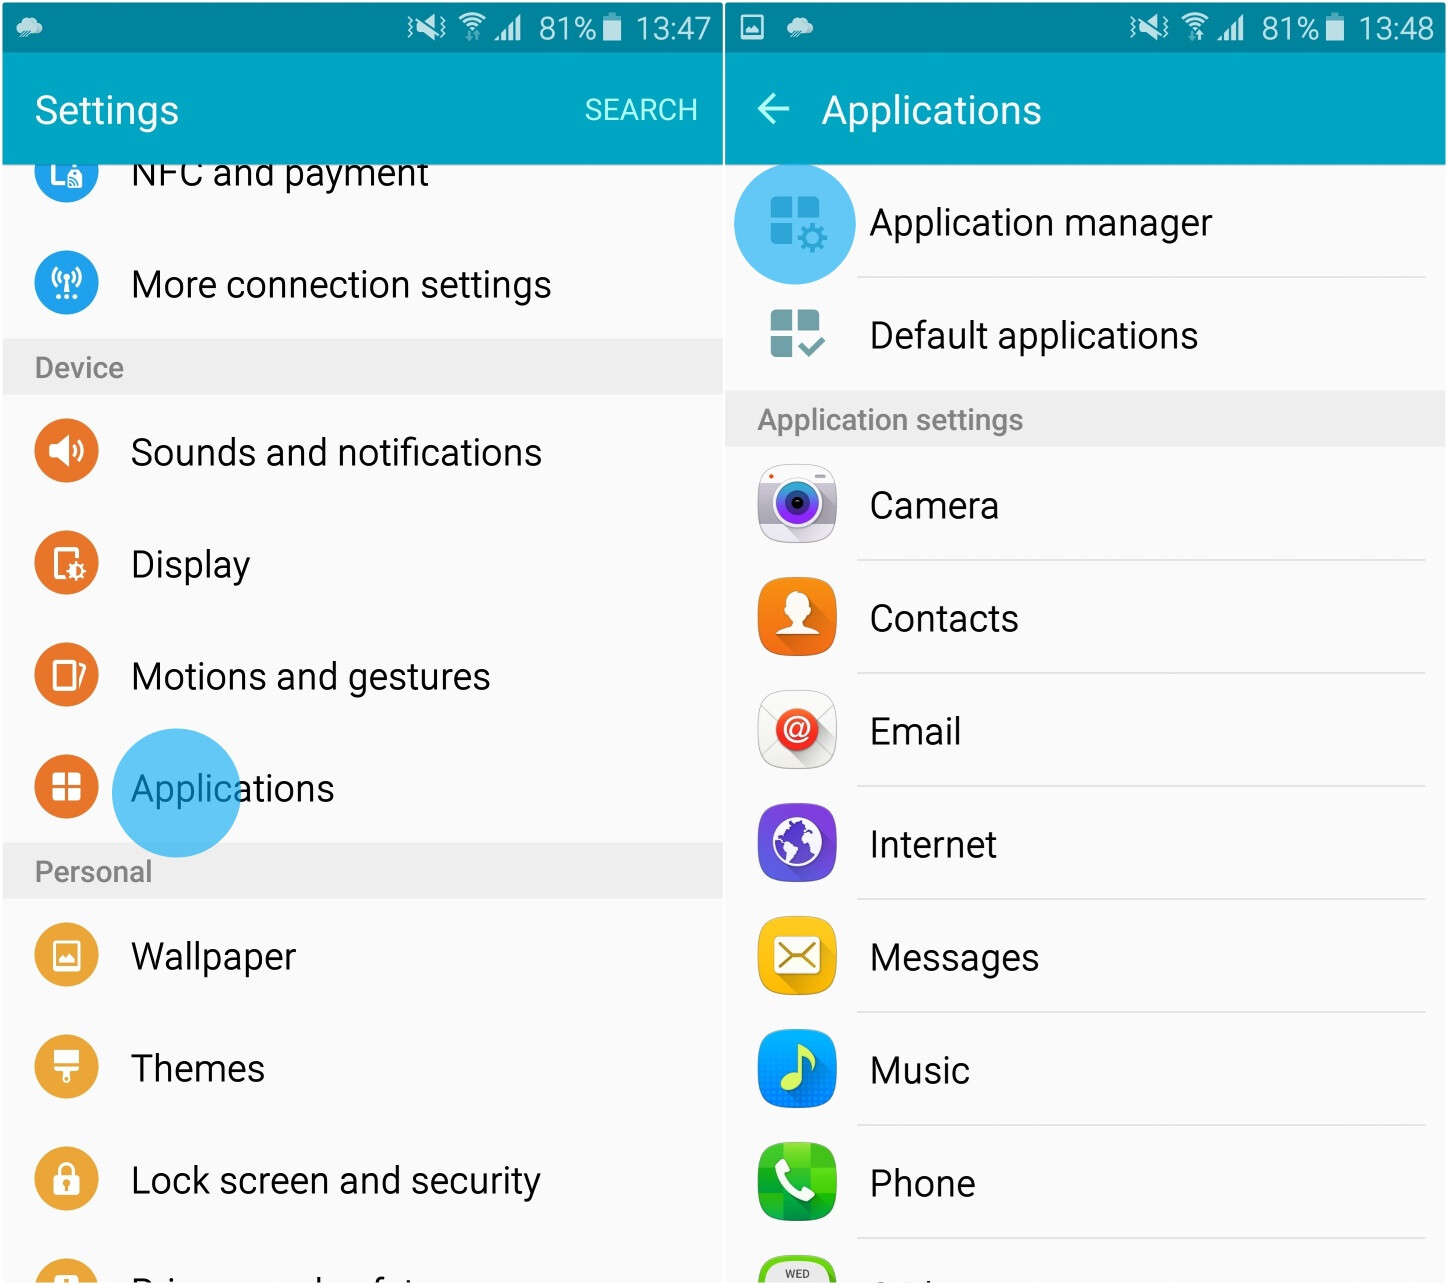 How To Get Rid Of Notifications Badges On Apps If You Have A Samsung